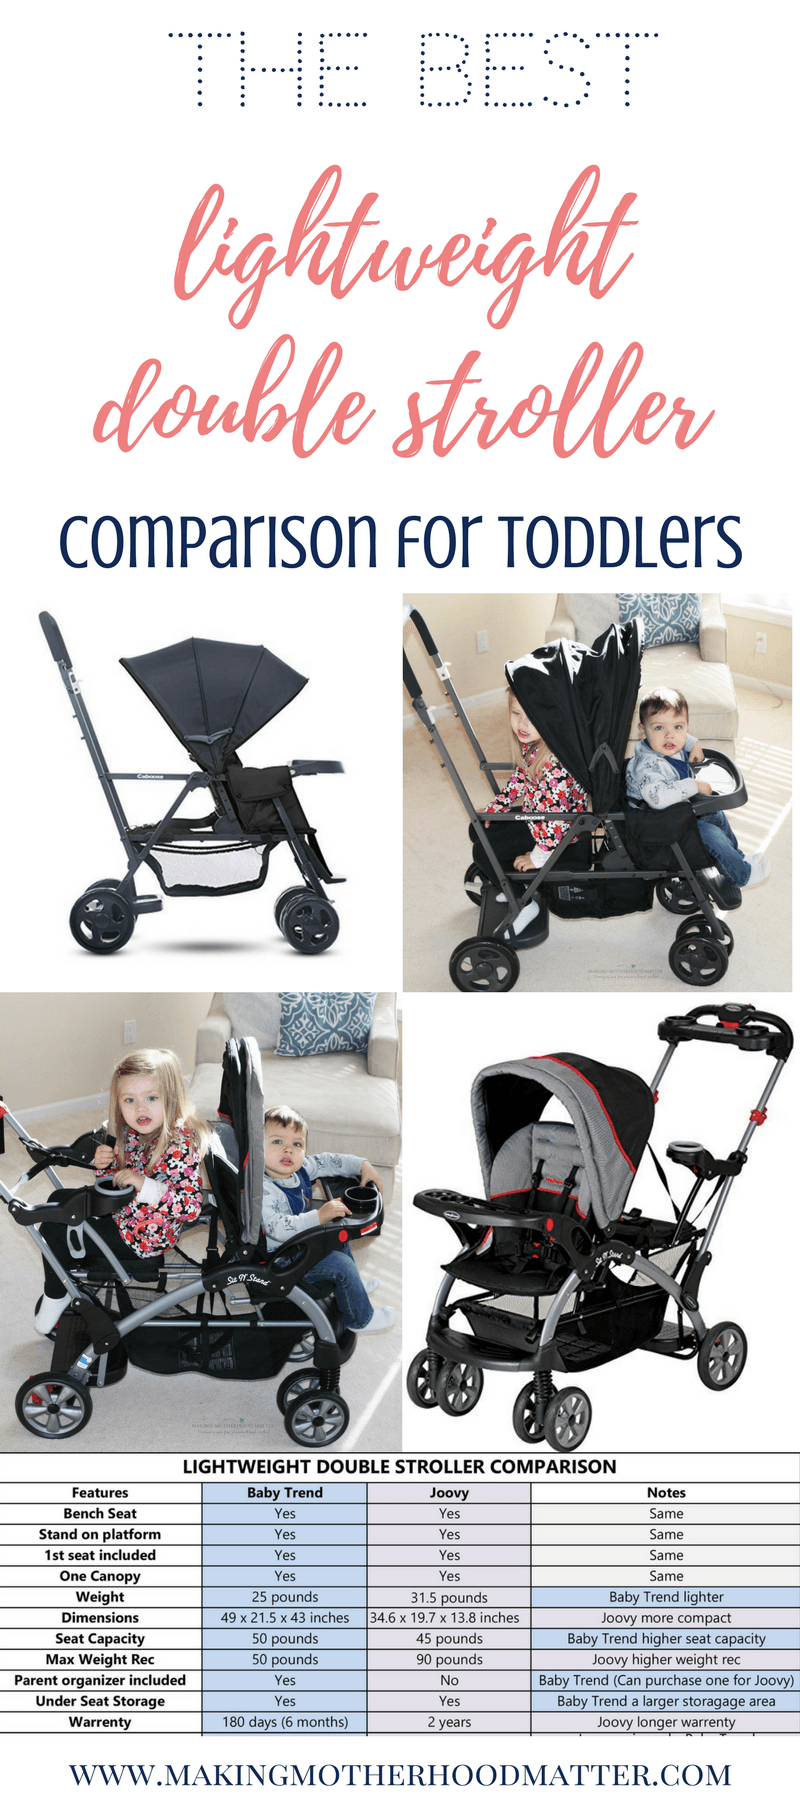 The Best Lightweight Double Stroller Comparison for